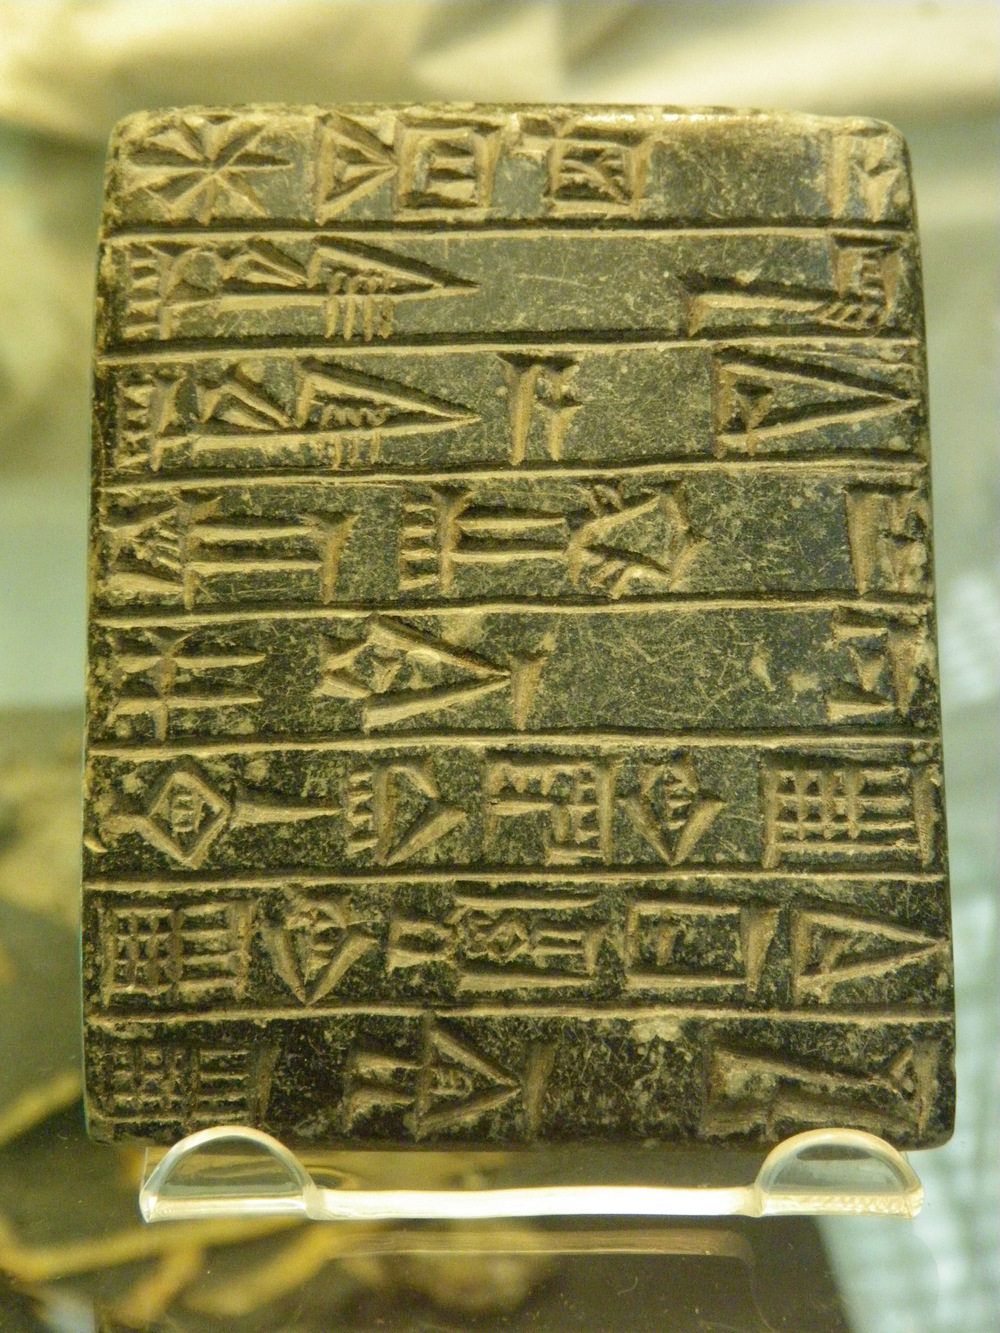 Figure 3.1. Sumerian tablet. The first word of the text is An. British Museum.